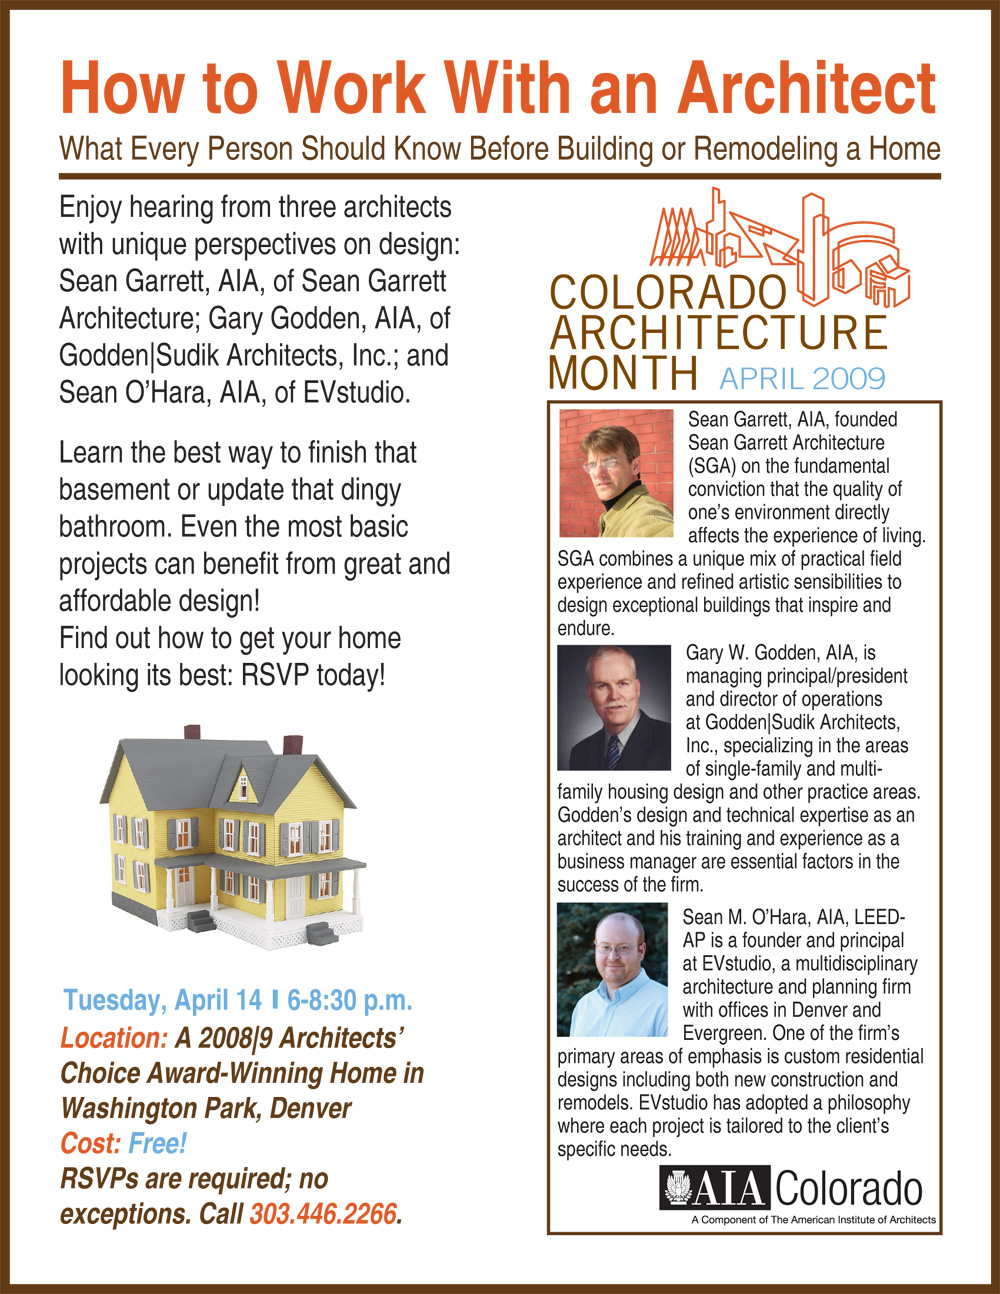 how_w_archictect_flier-1-copy